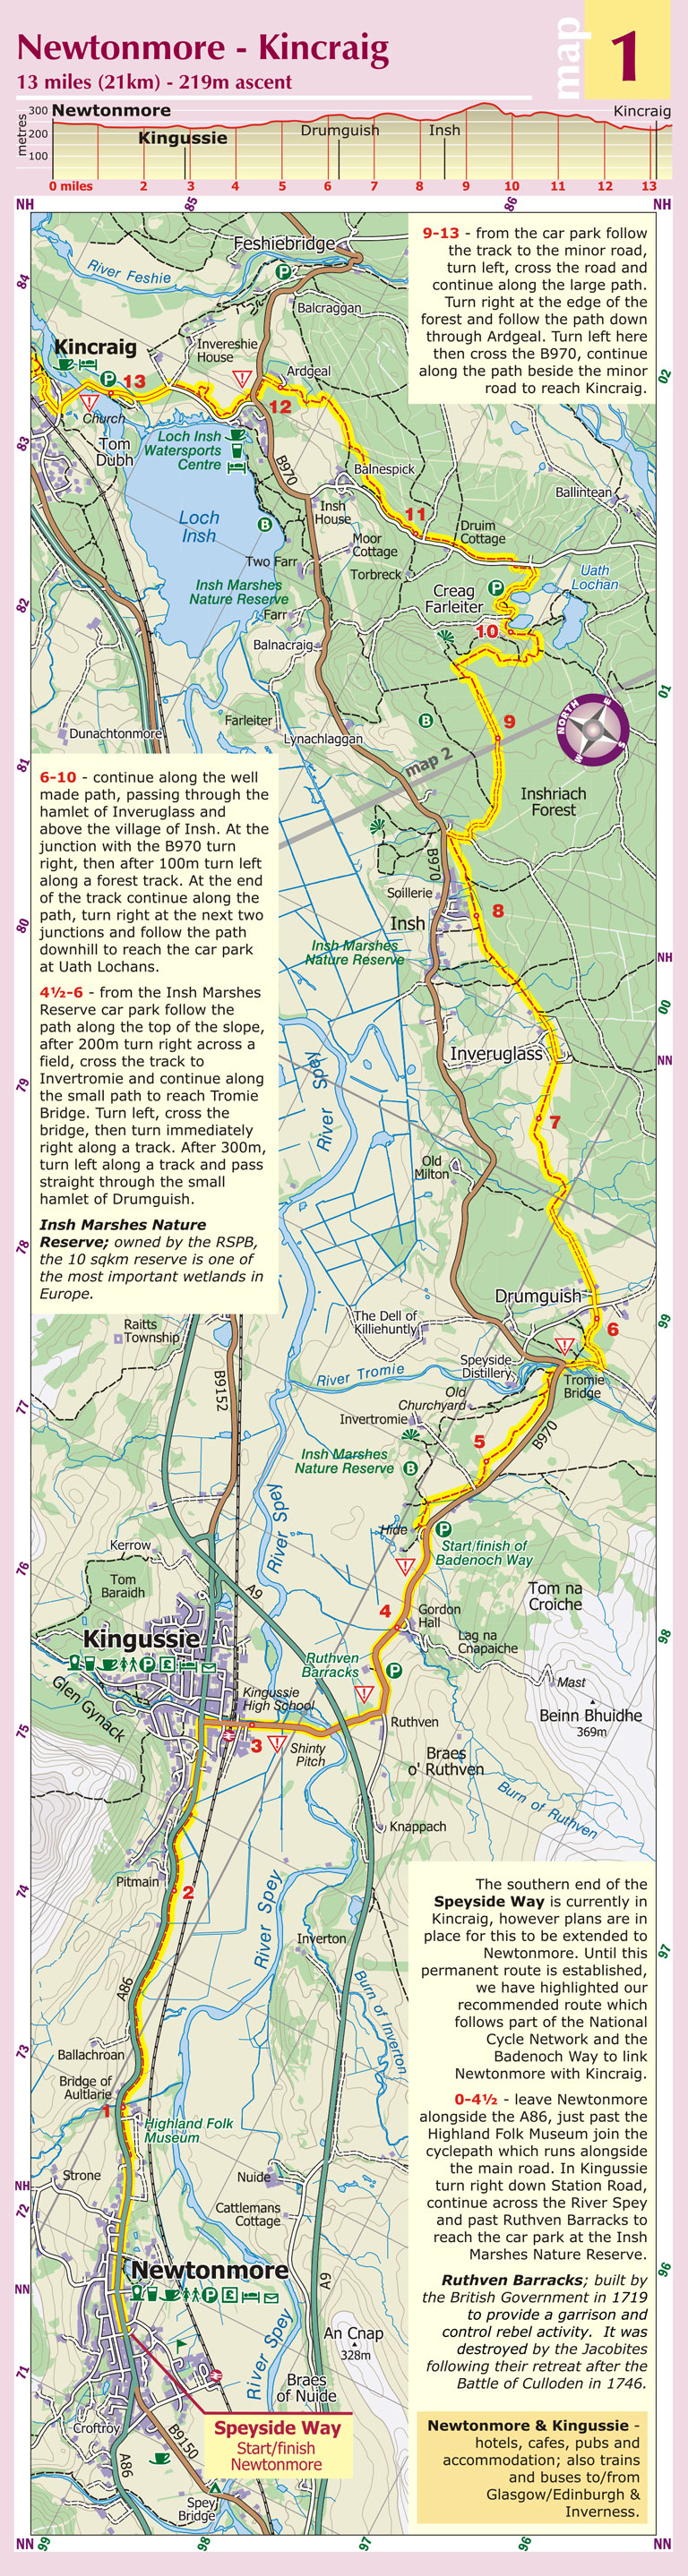 Newtonmore to Kincraig strip map from the excellent Footprint map for the Speyside Way